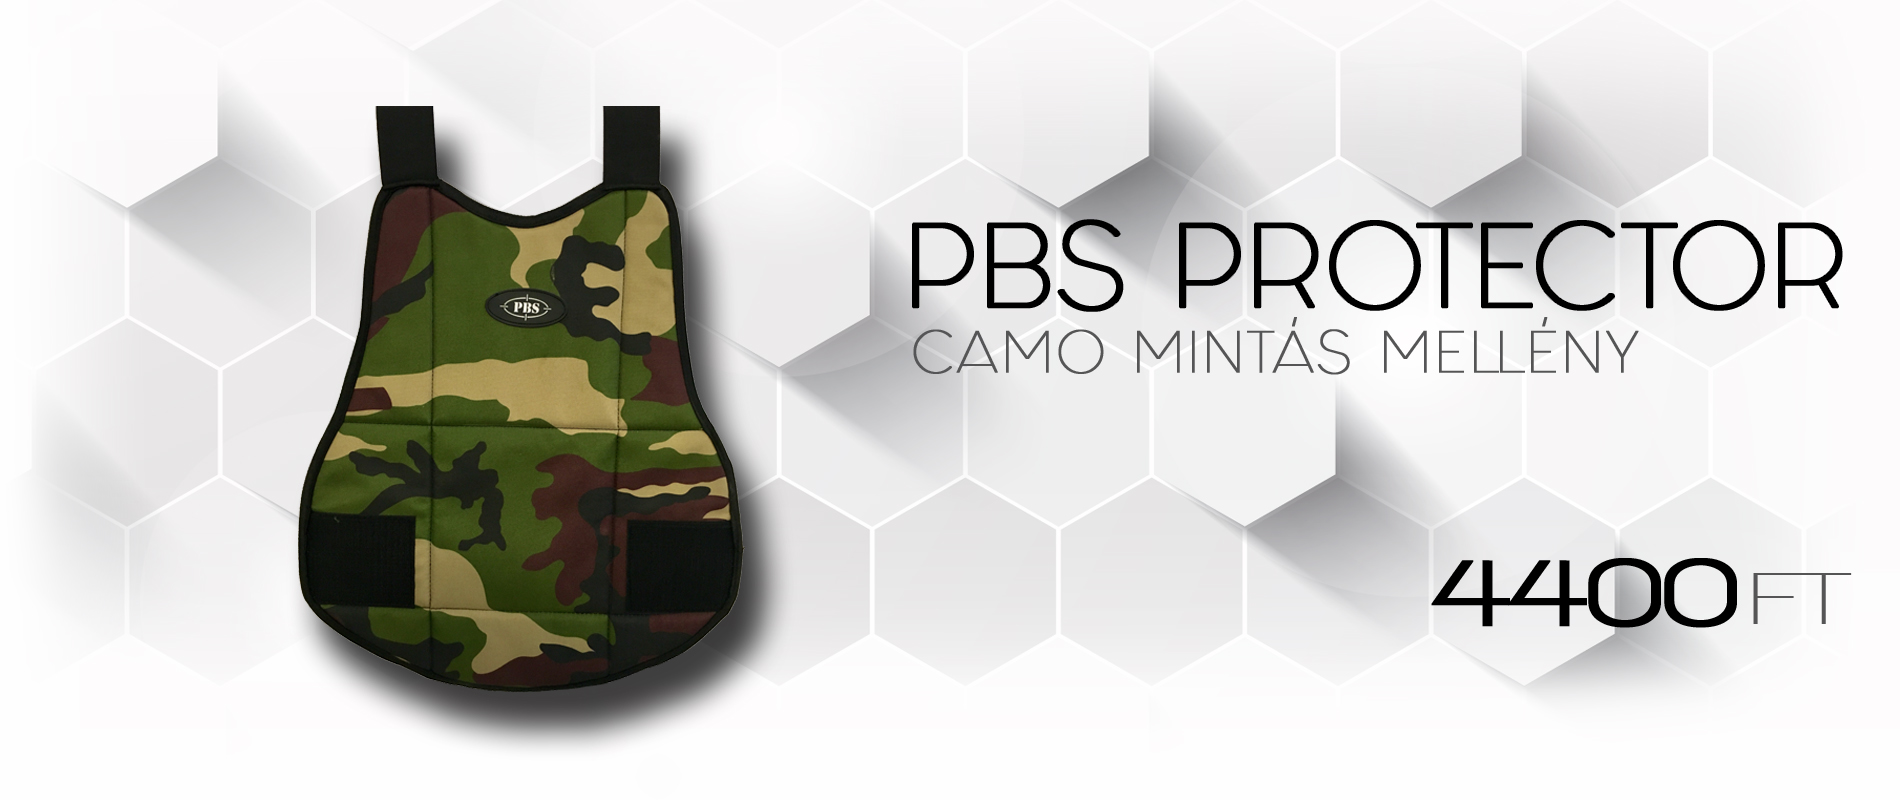 PBS protector